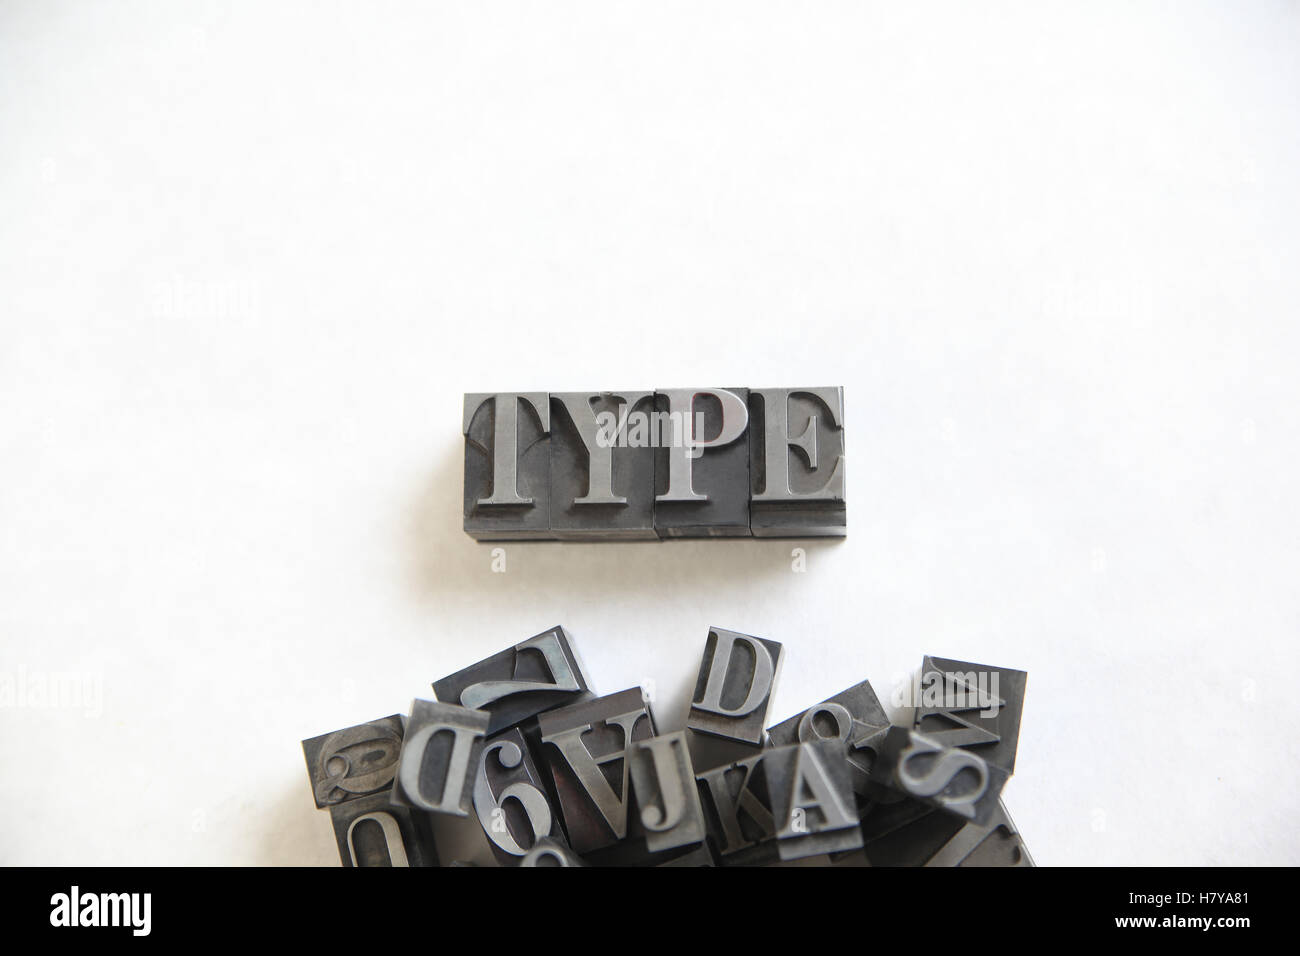 The word type in metal letters with a pile of assorted letters and numbers underneath - Stock Image